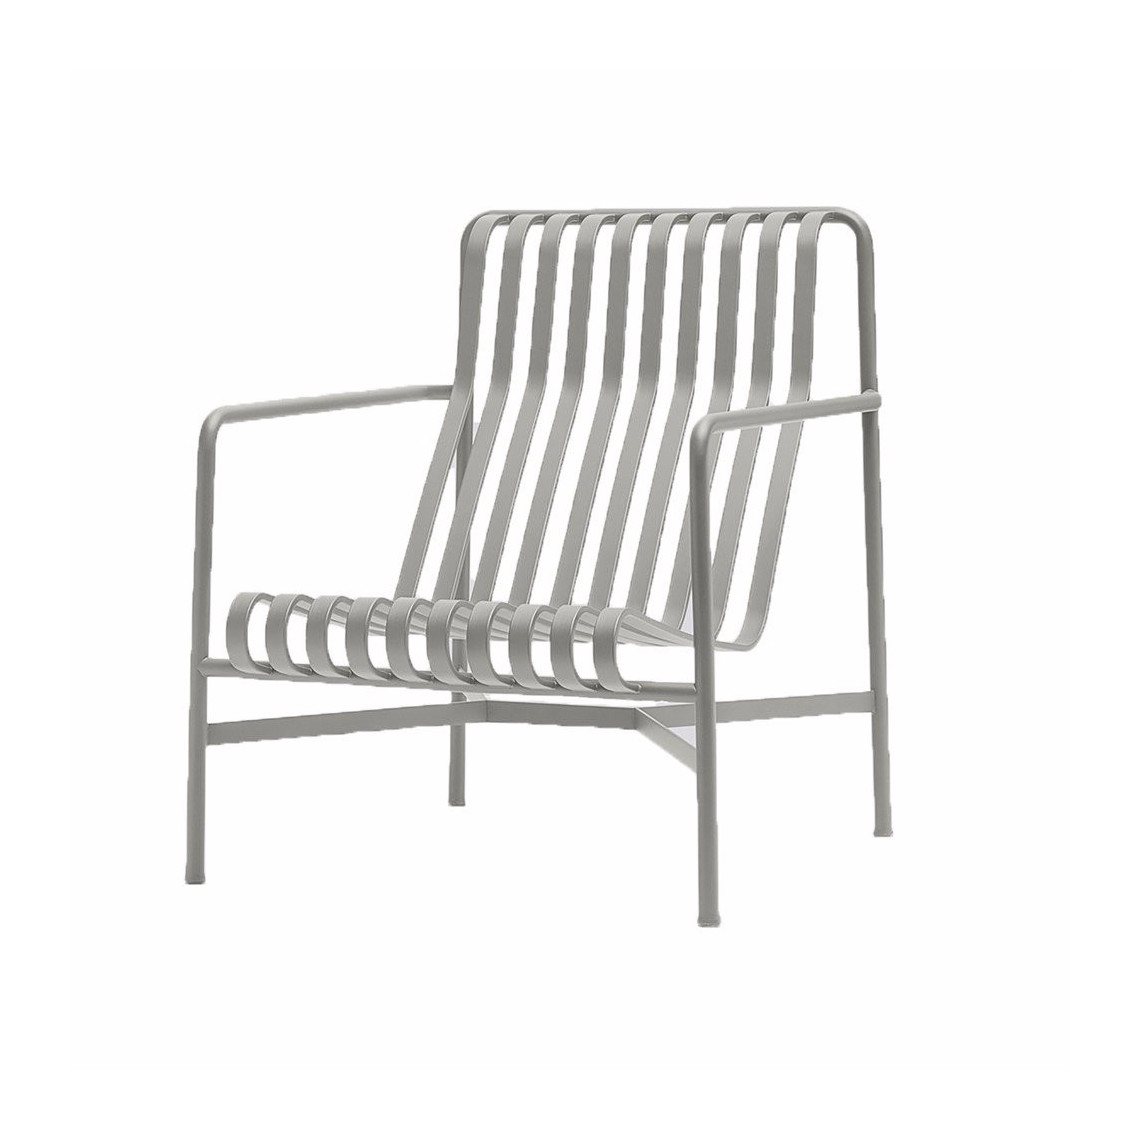 Palissade Lounge Chair Hög